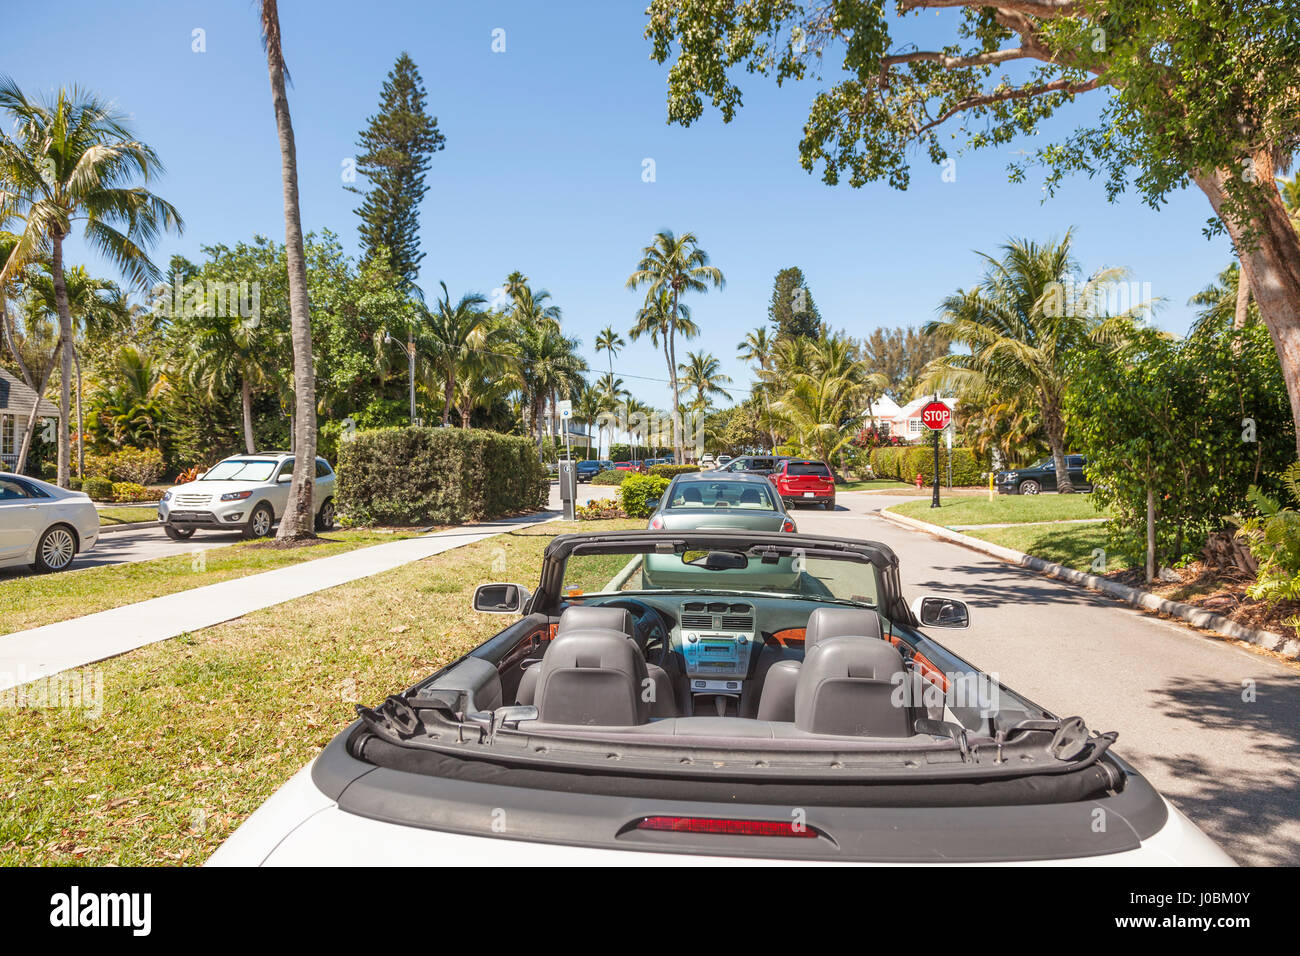 Luxury convertible car parked in the city of Naples. Florida, United States - Stock Image